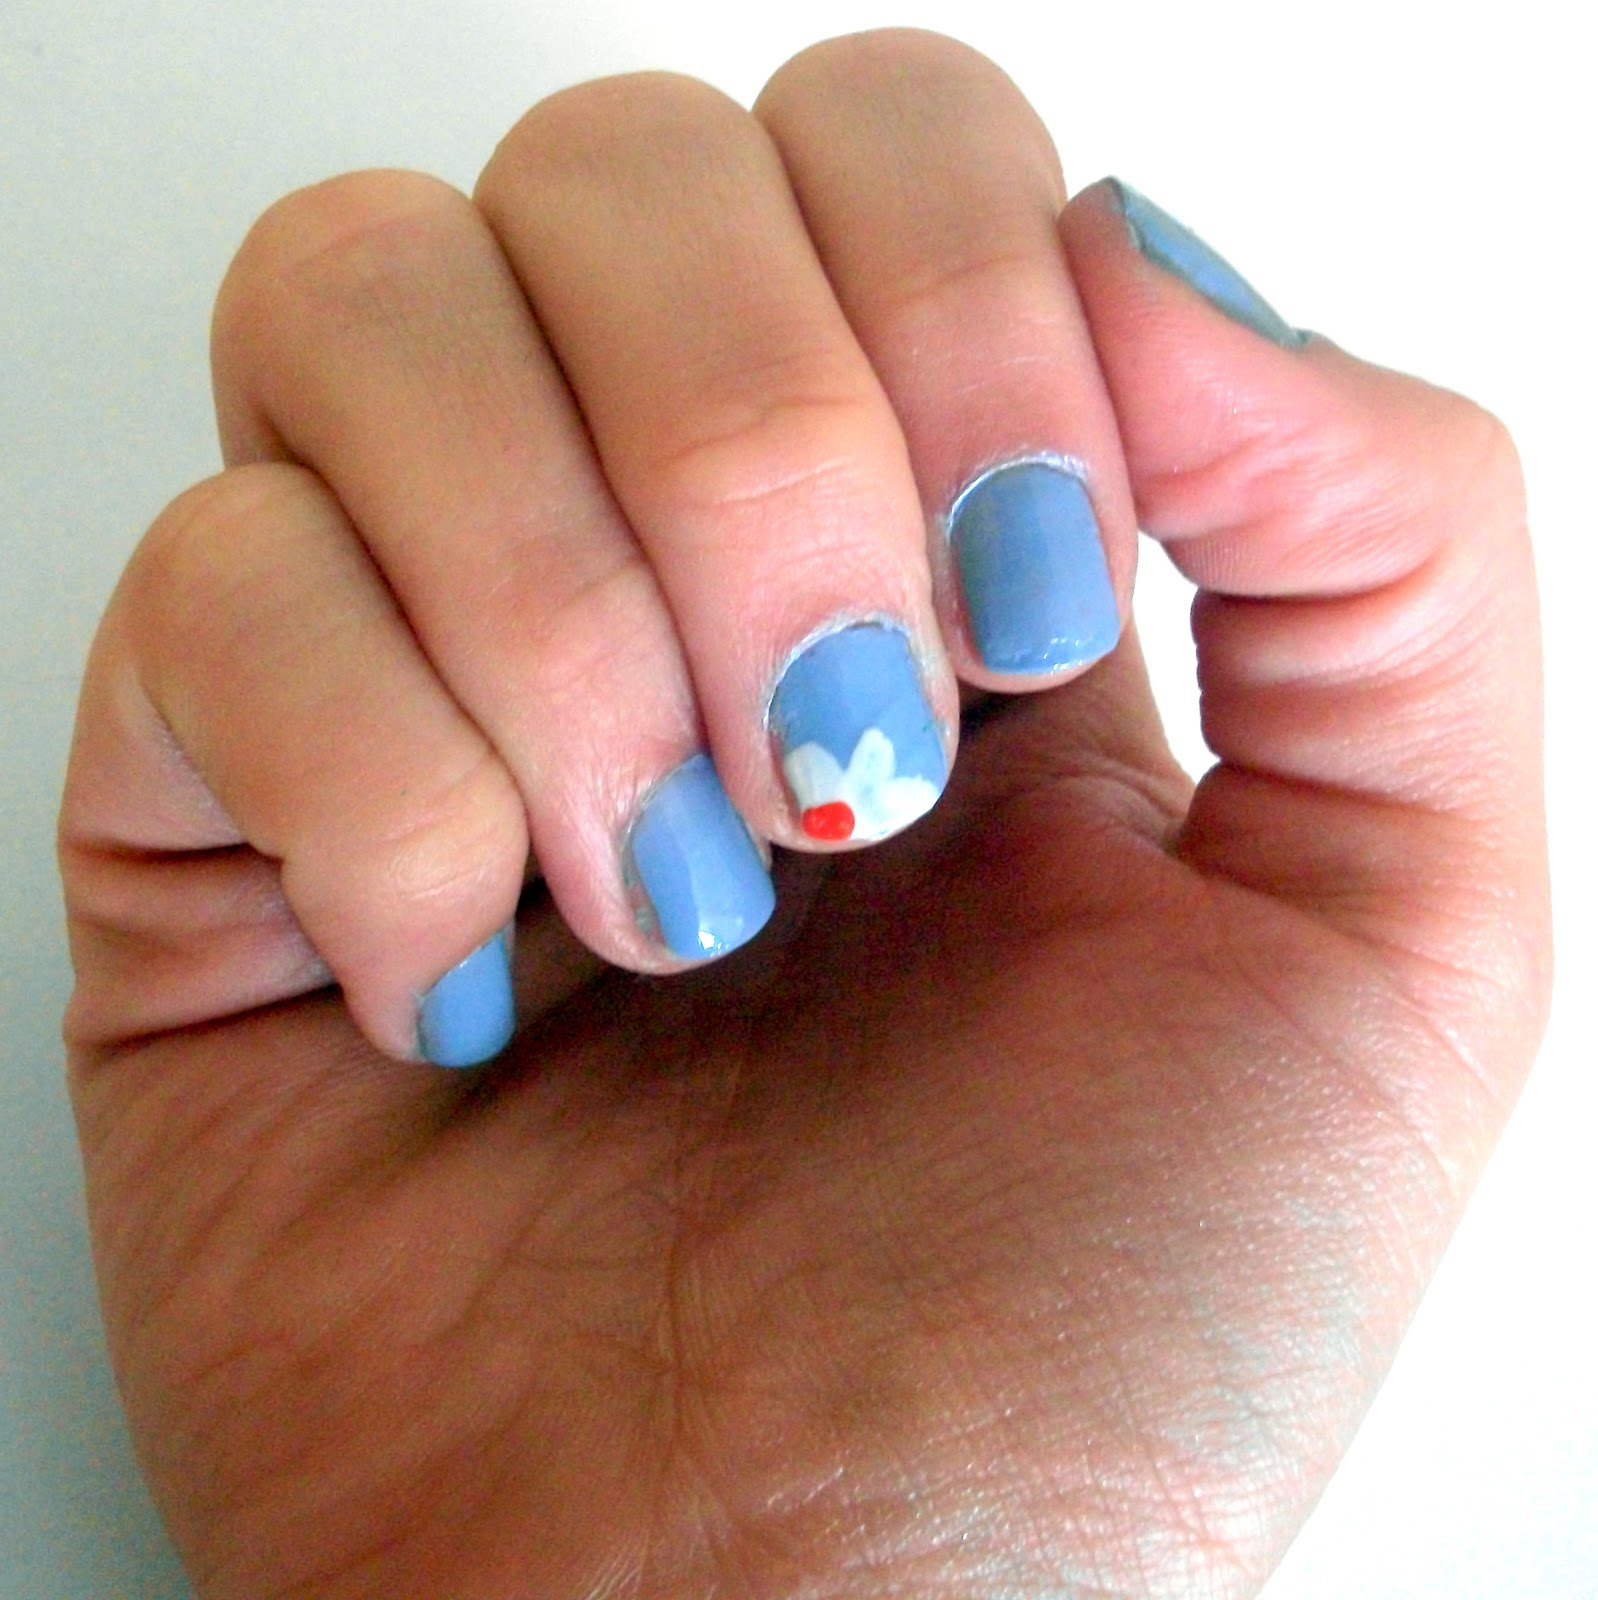 Simple Nail Designs: GemSeren UK Beauty Blog: Simple Daisy Nail Art